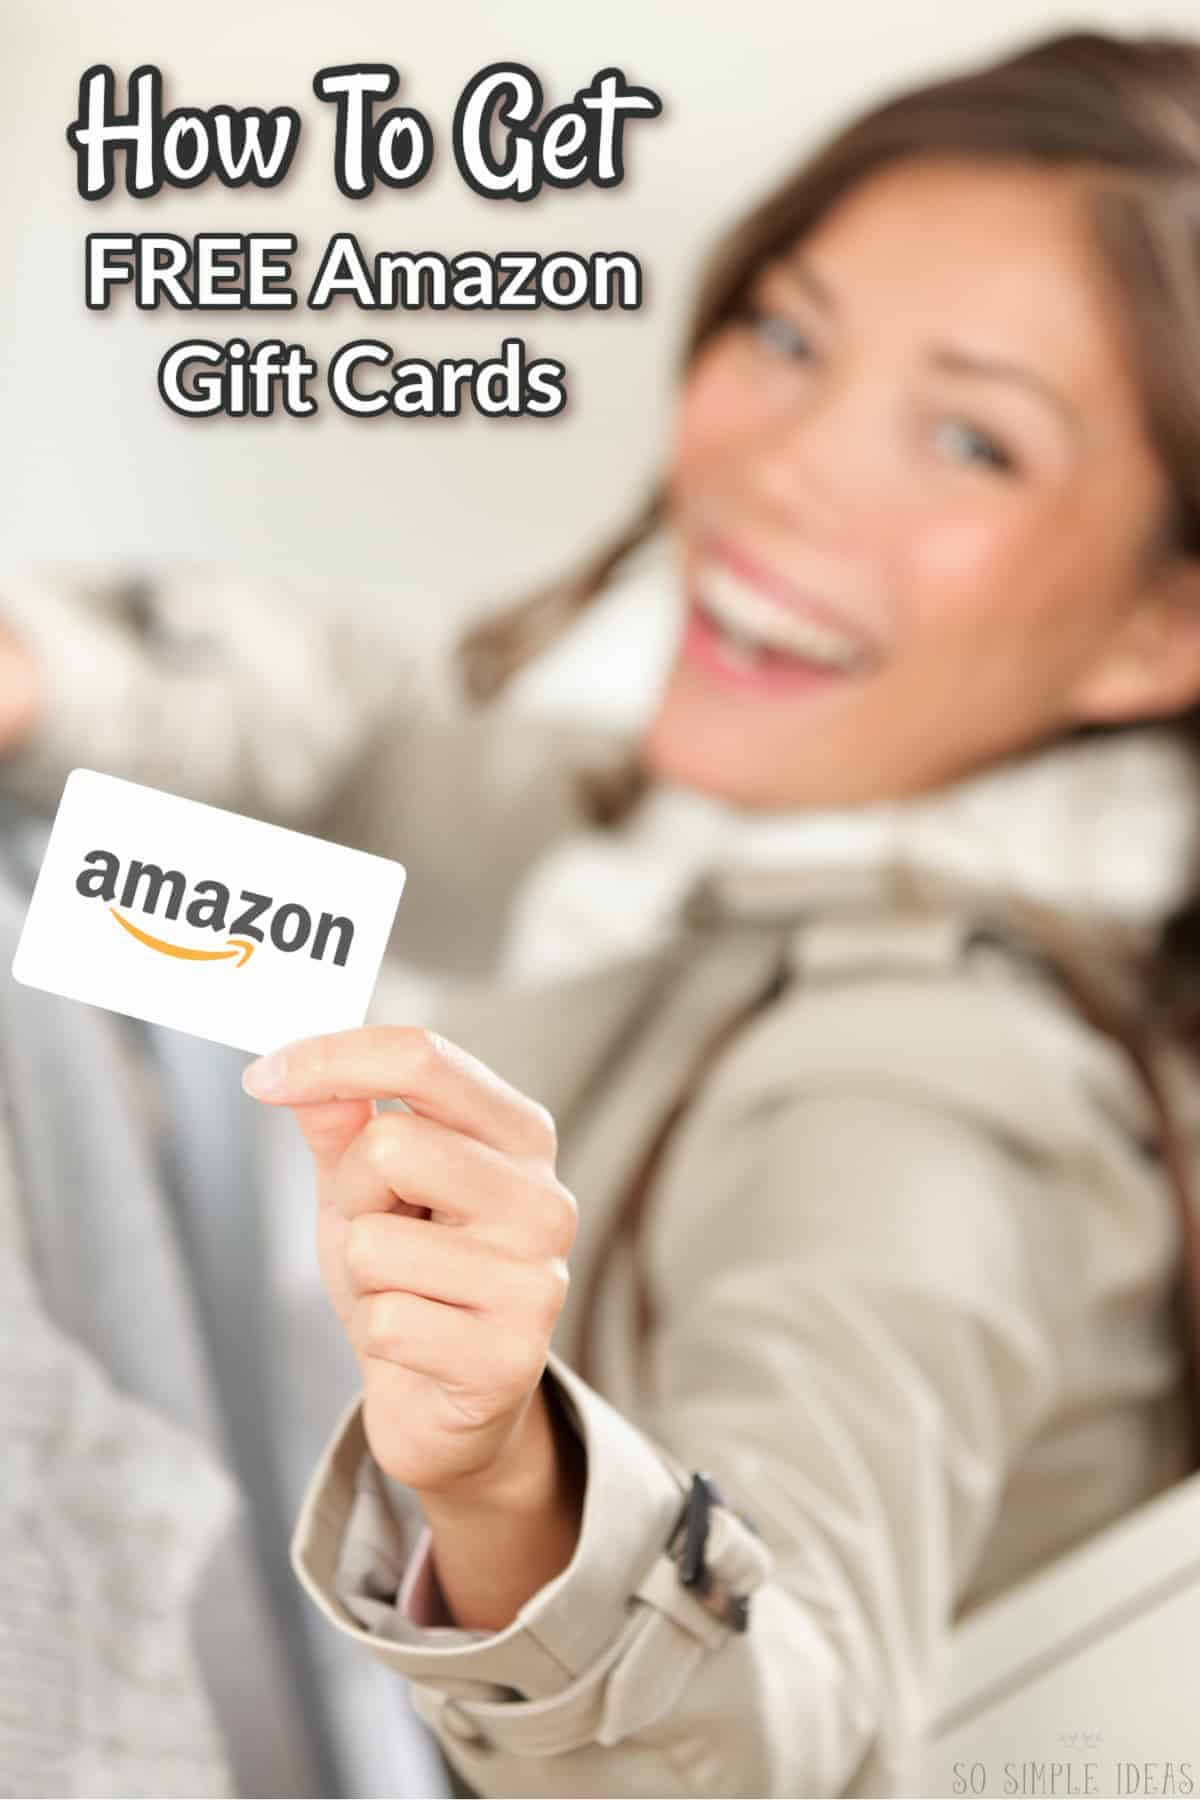 how to get free amazon gift cards cover image